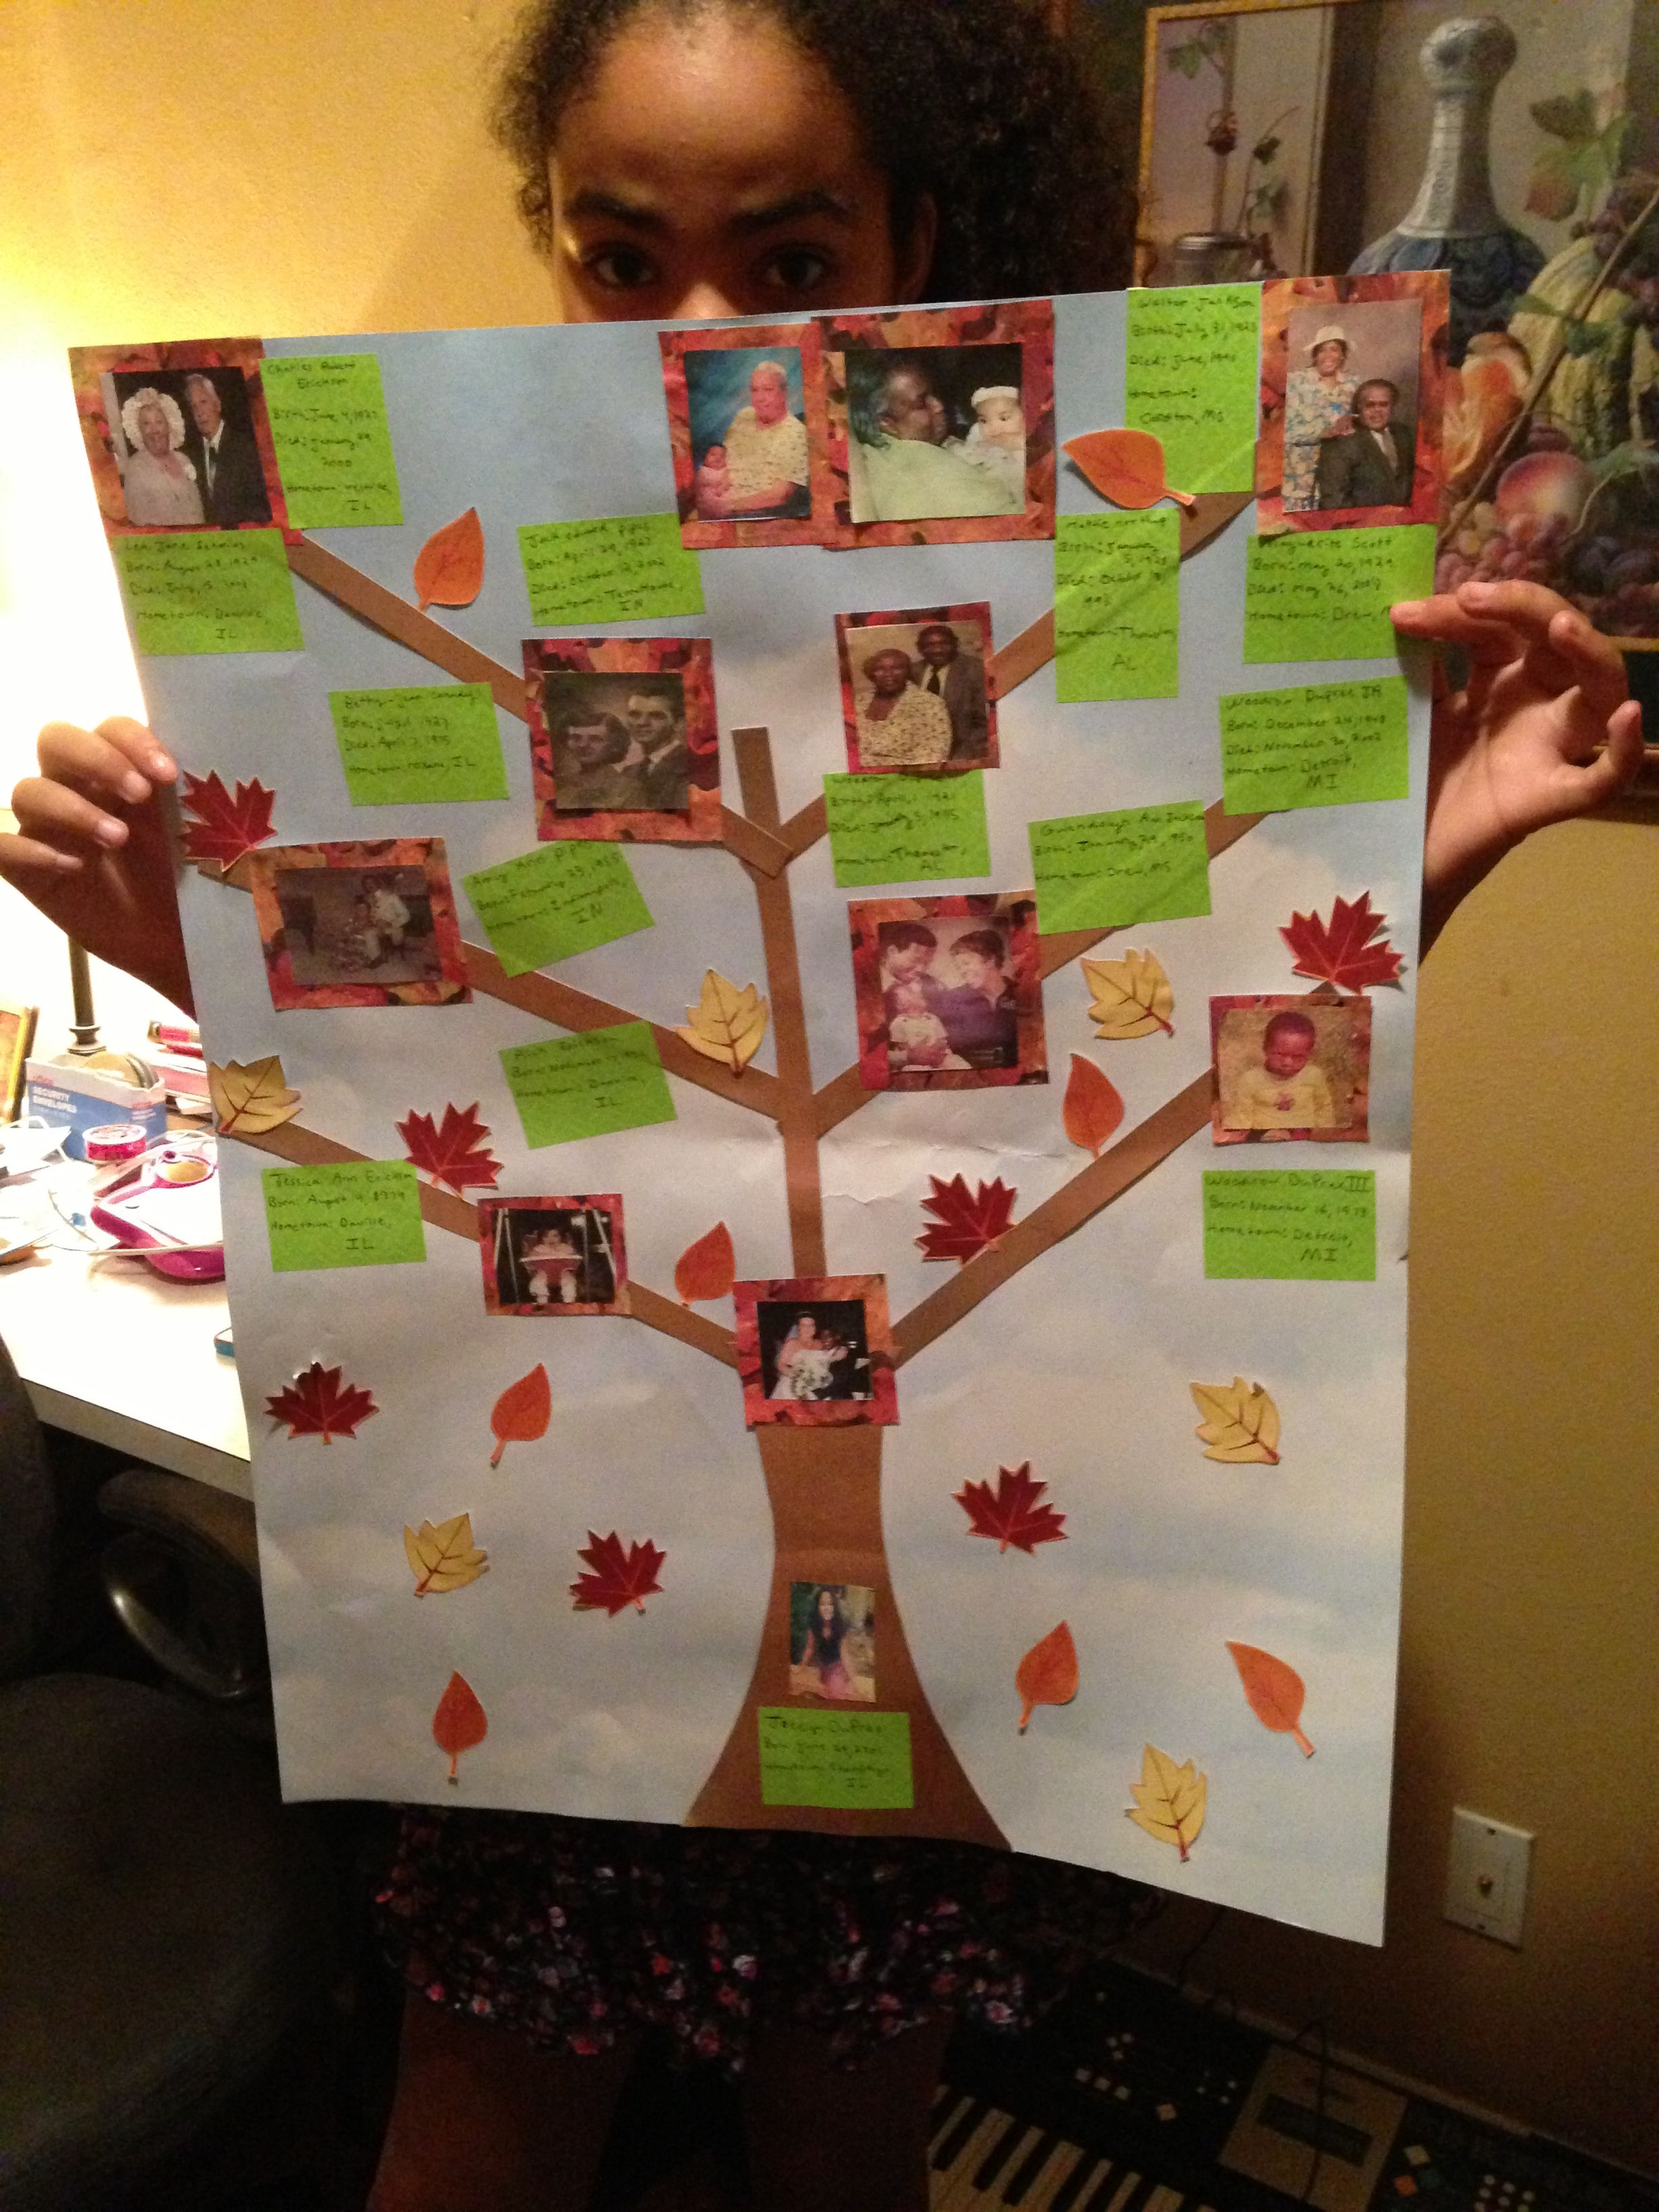 This Family Tree Activity Could Be Used To Talk About